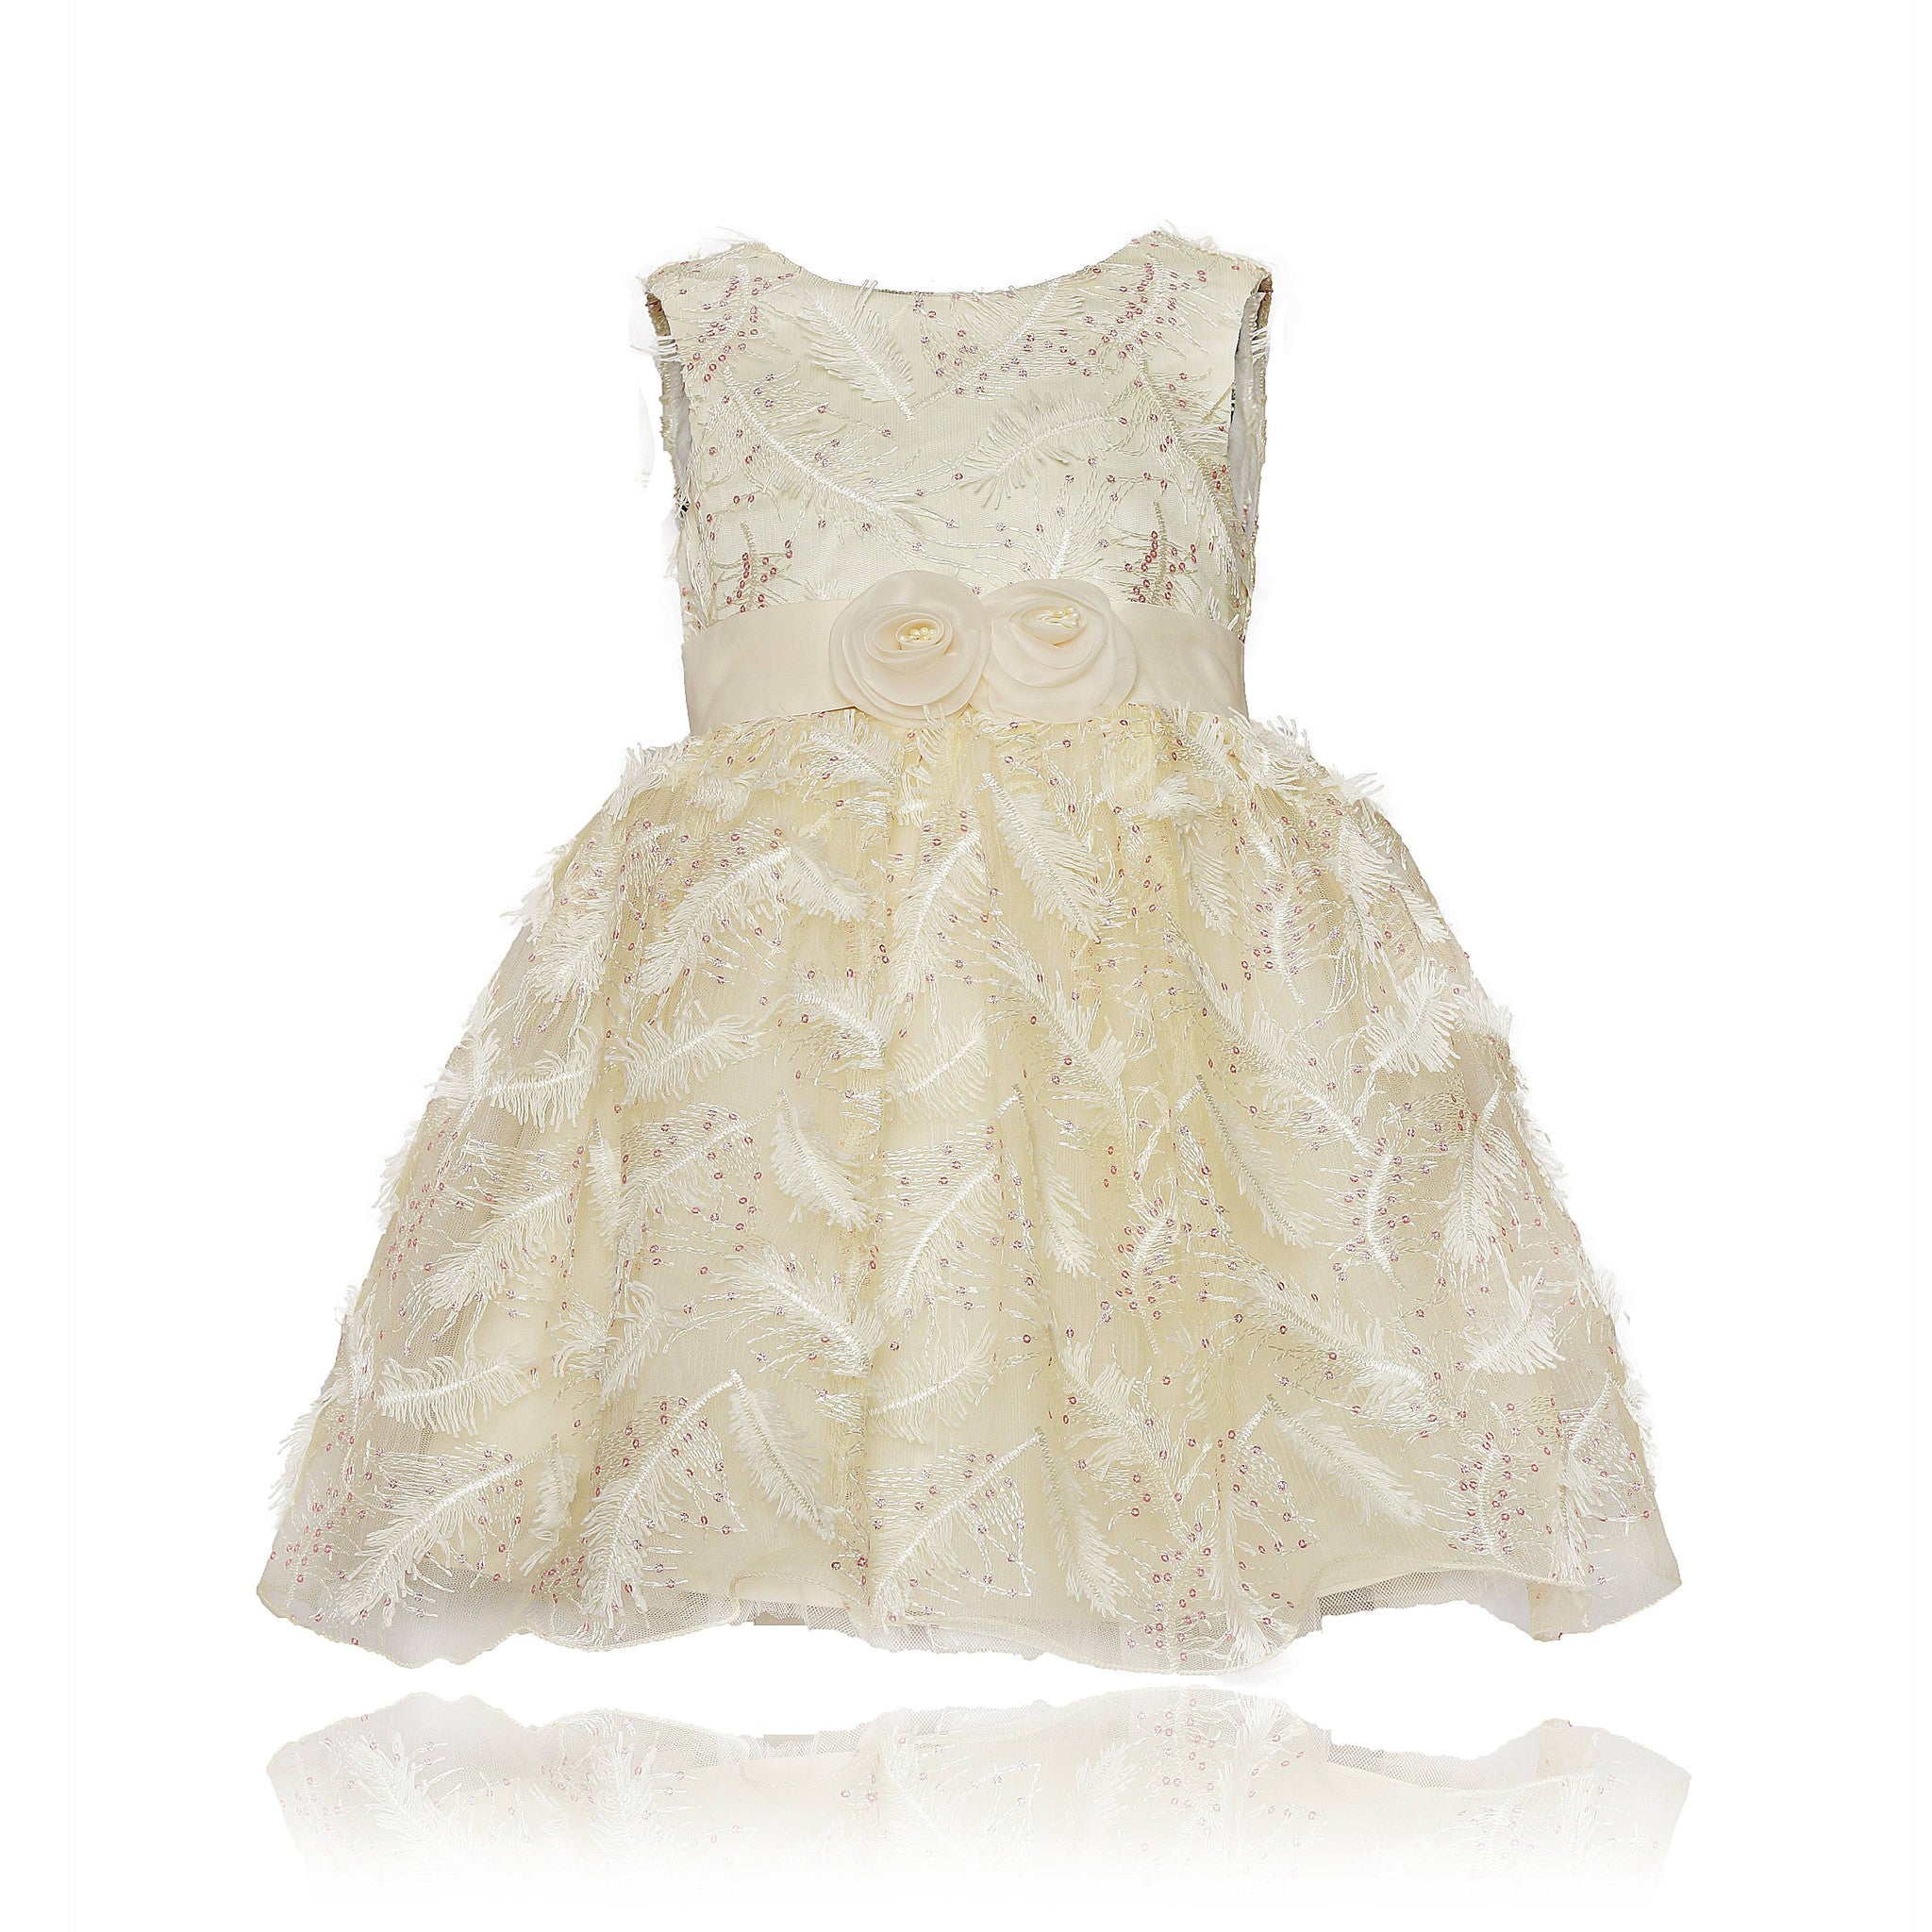 Buy Coctail Cream Glitter Princess Frock For Baby Girls Online Coctail